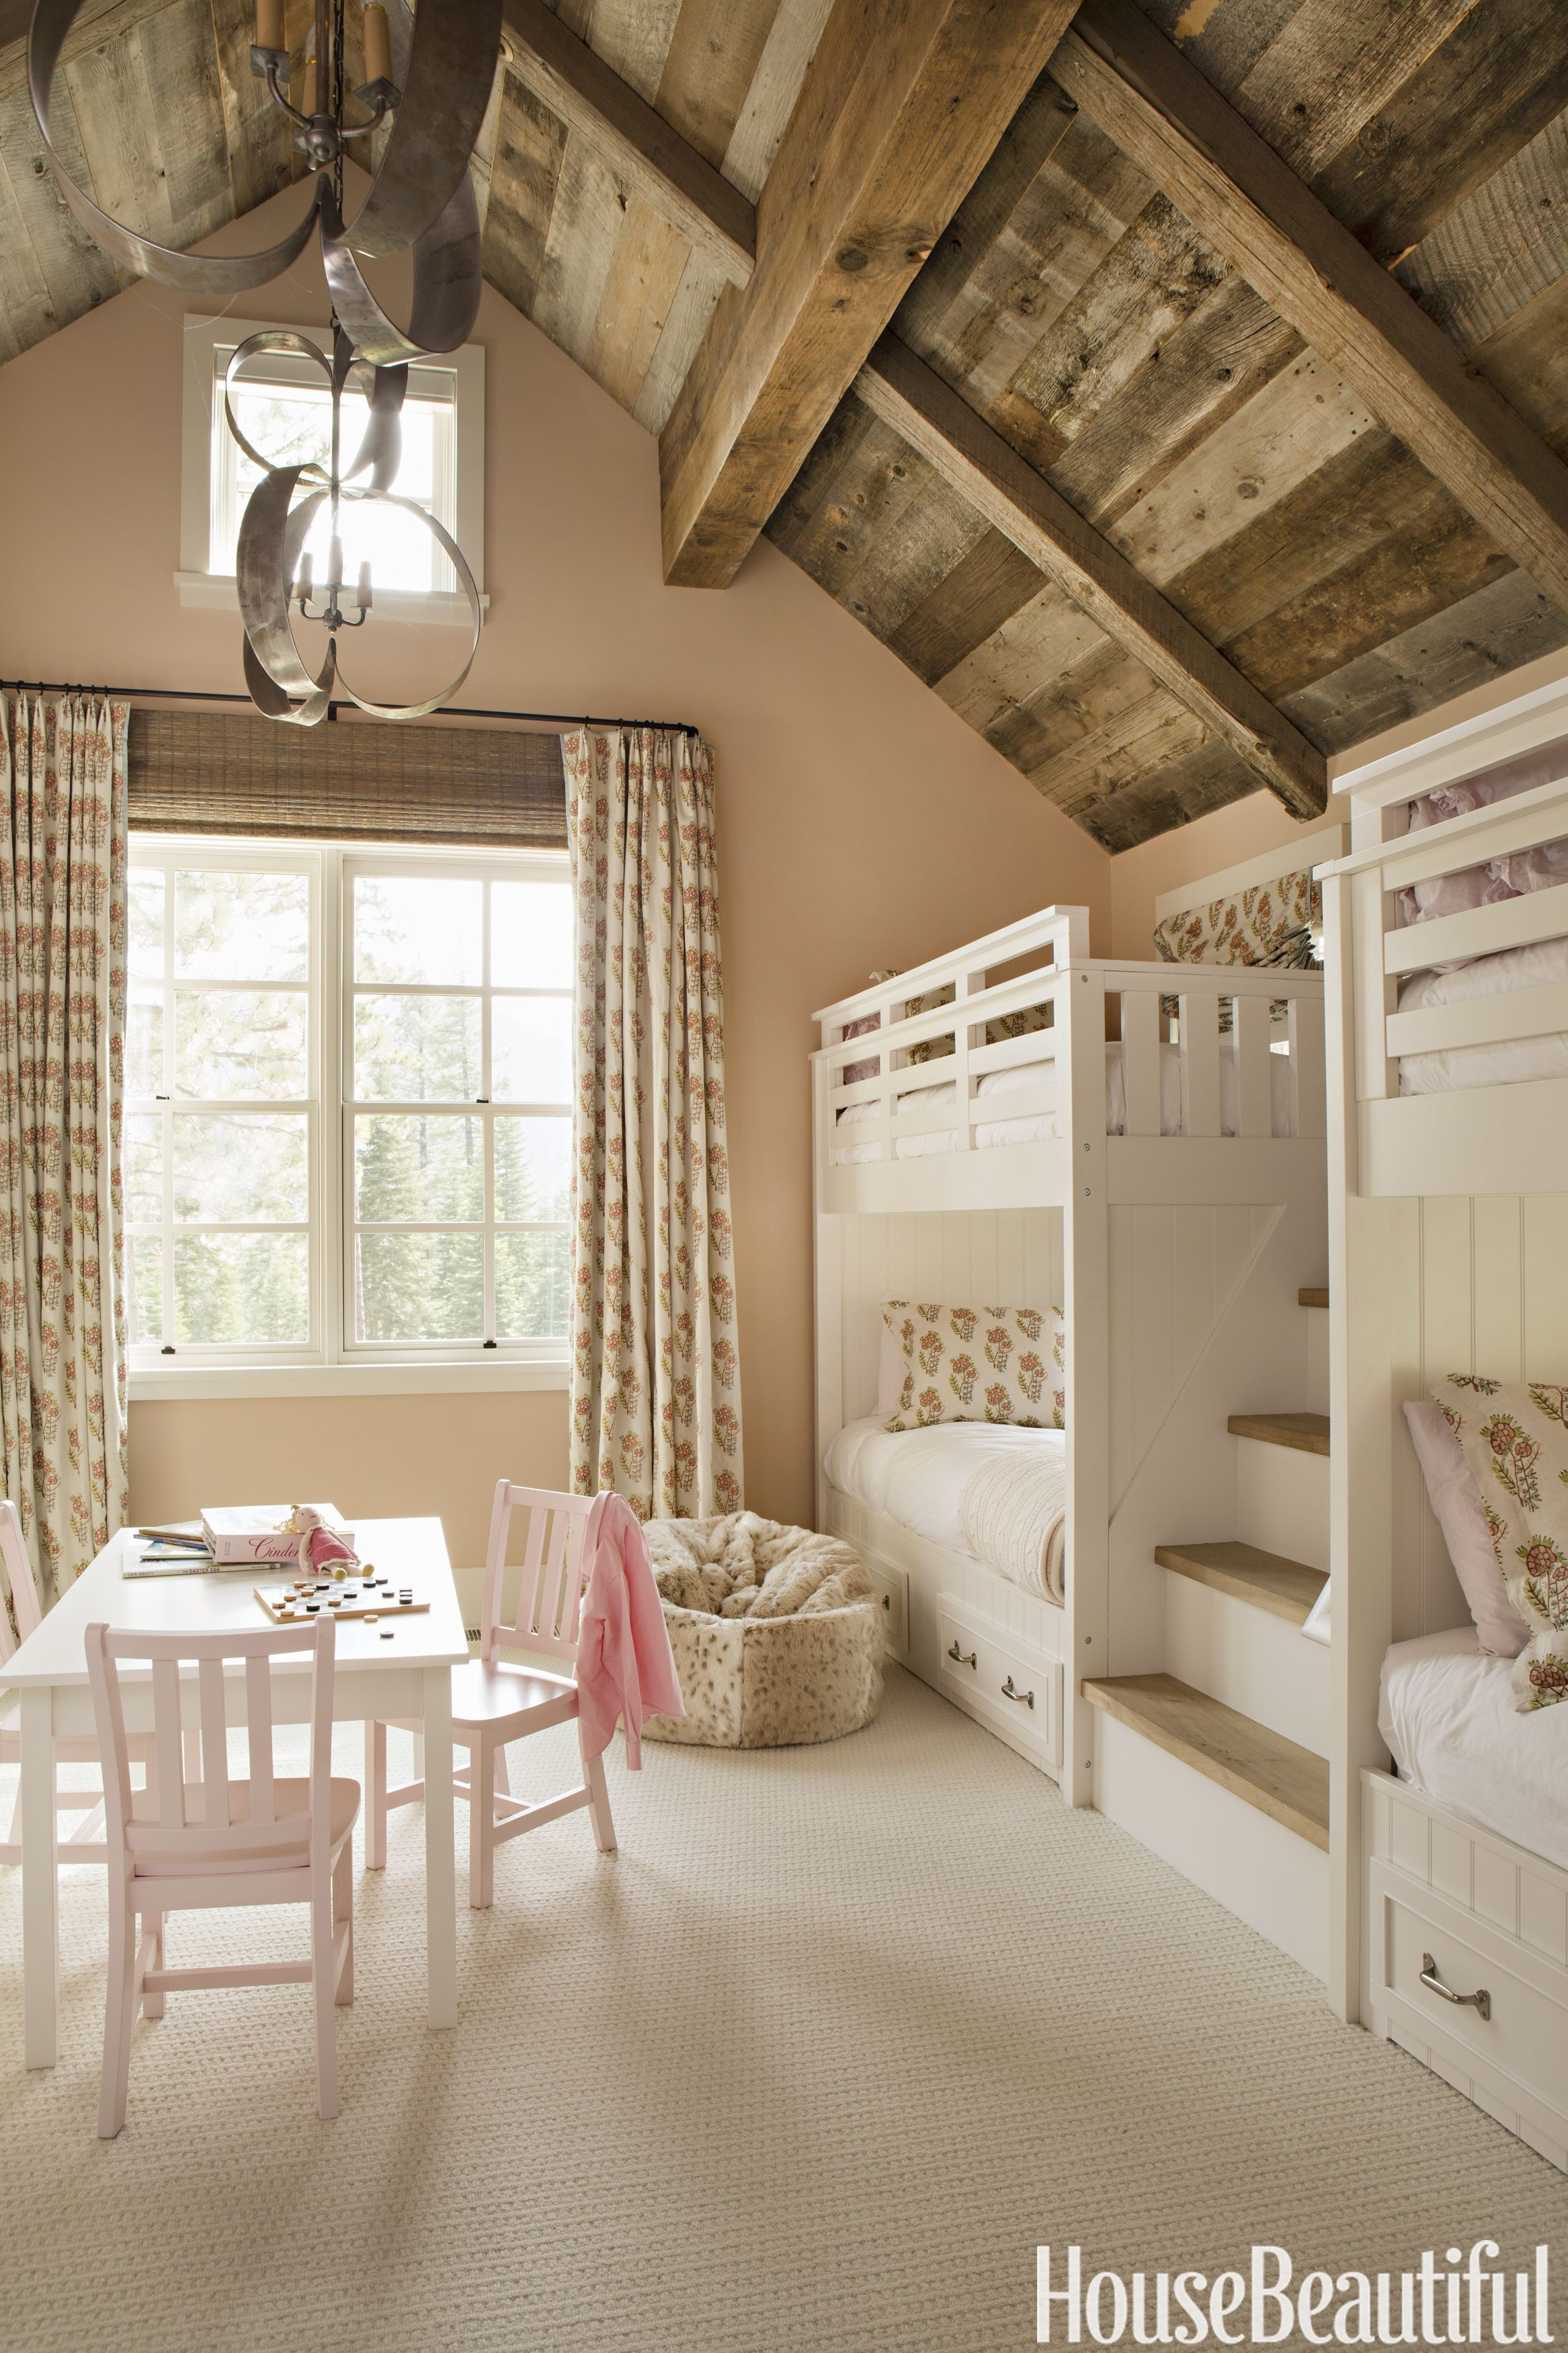 Unique Bedroom Dcor Ideas You Havent Seen Before Go To Bunk Bed